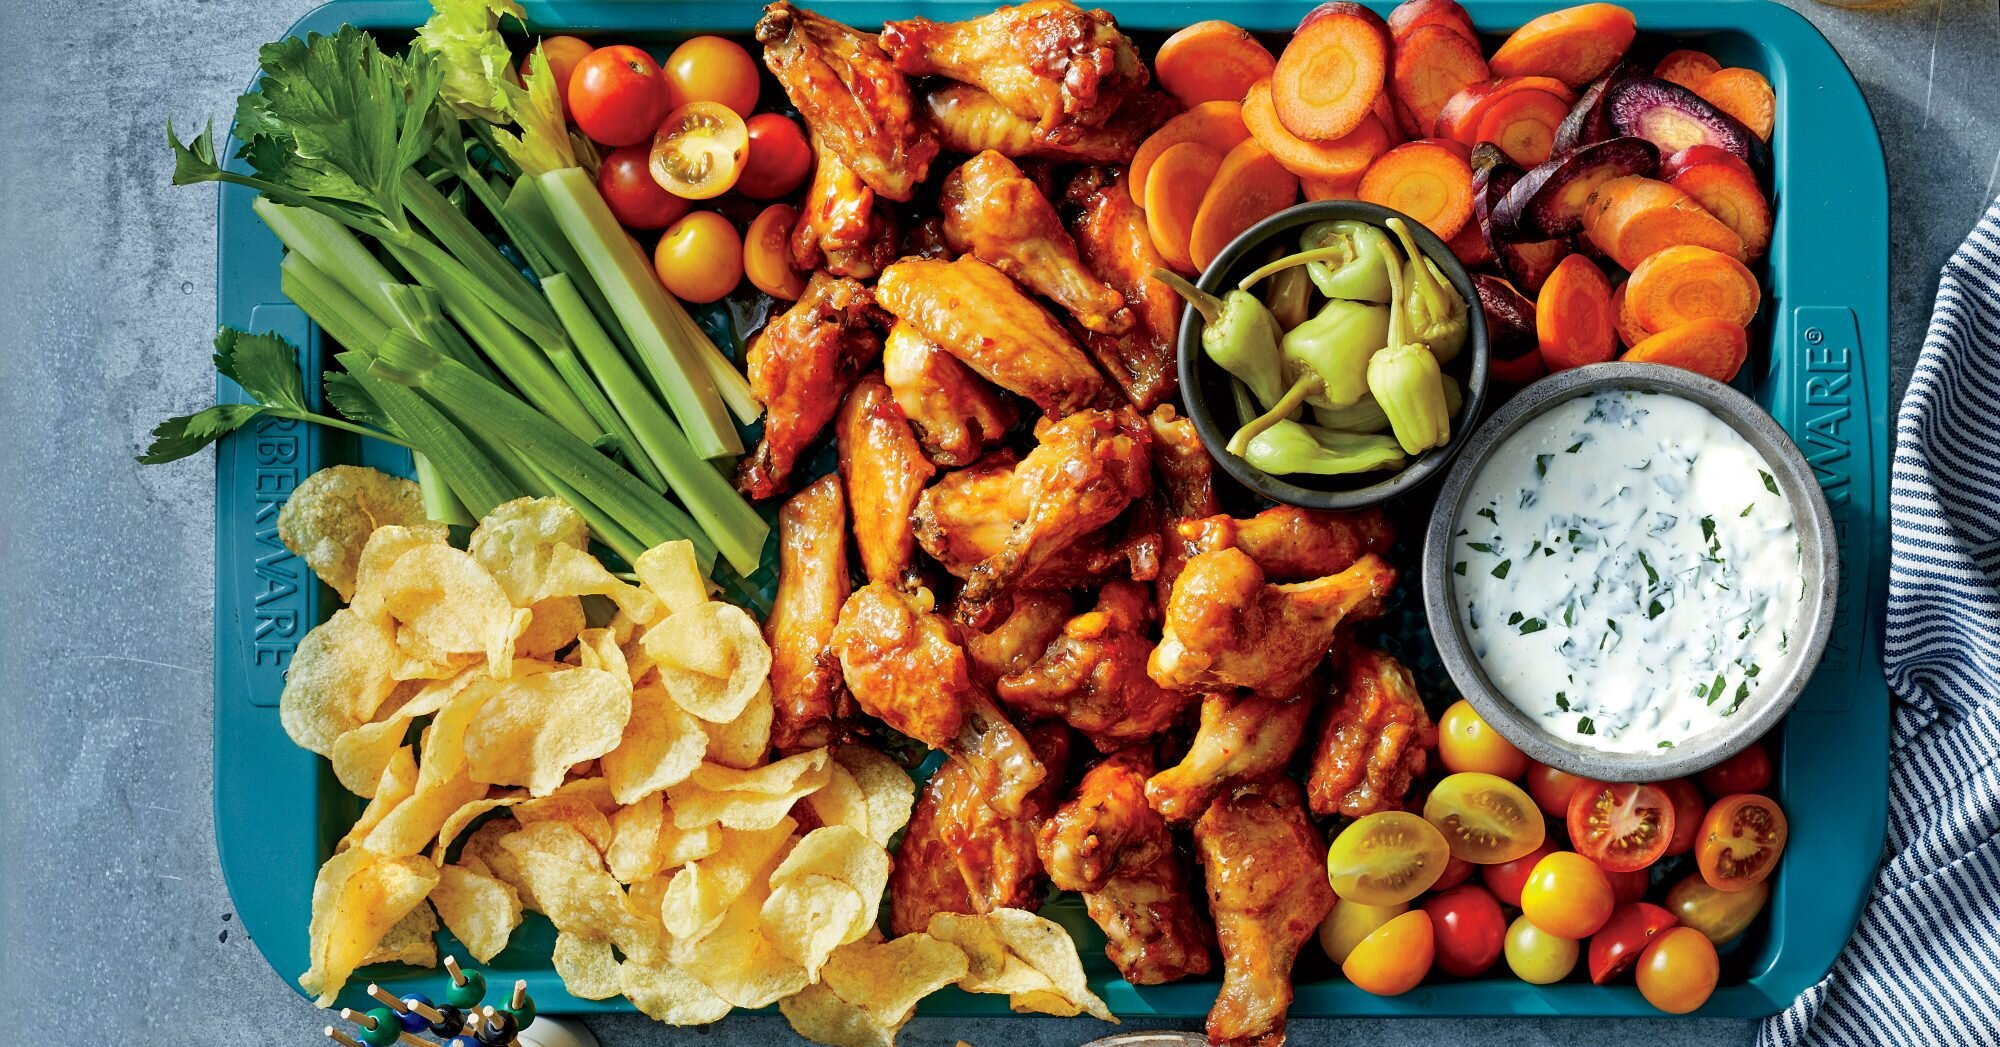 What to Serve with Chicken Wings